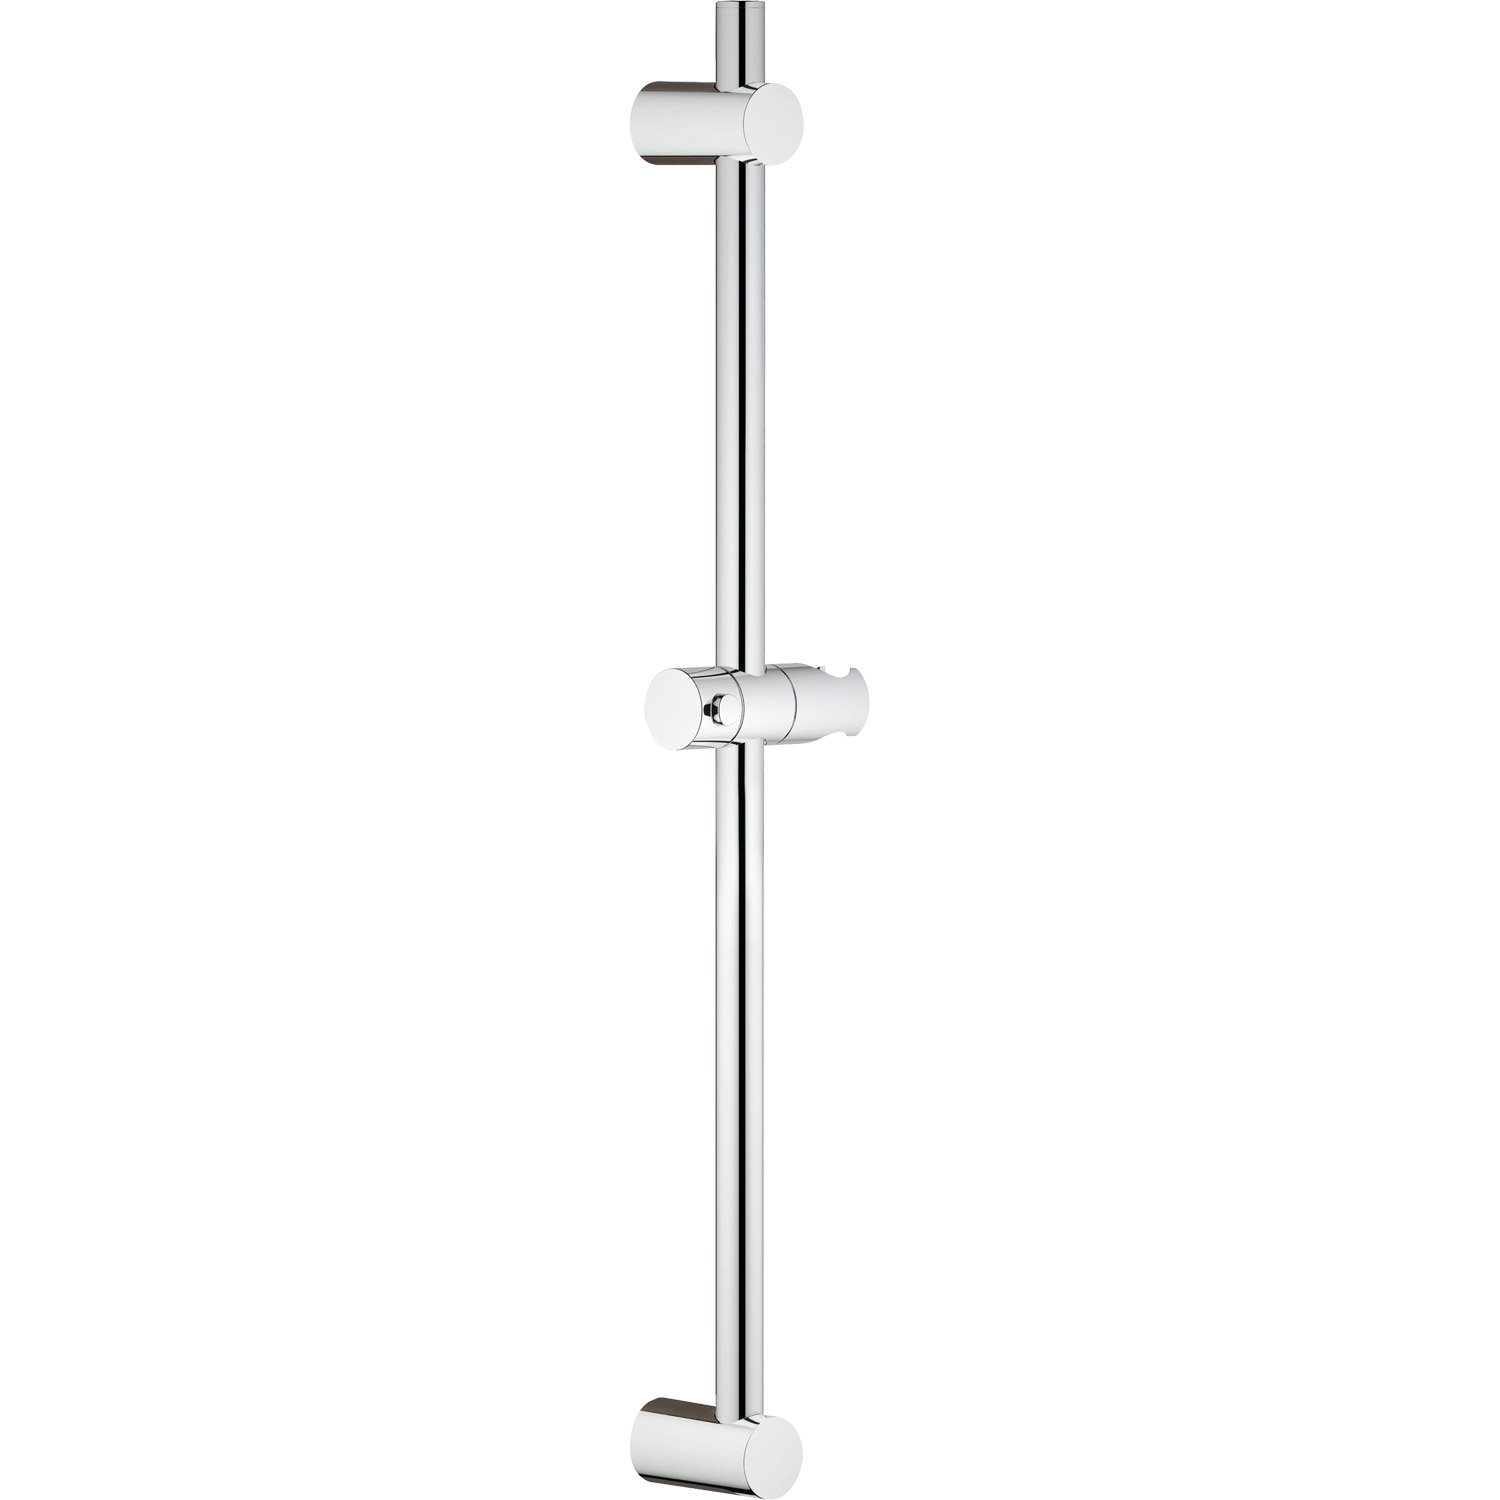 Barre de douche chrome grohe vitalio start leroy merlin - Barre de douche leroy merlin ...